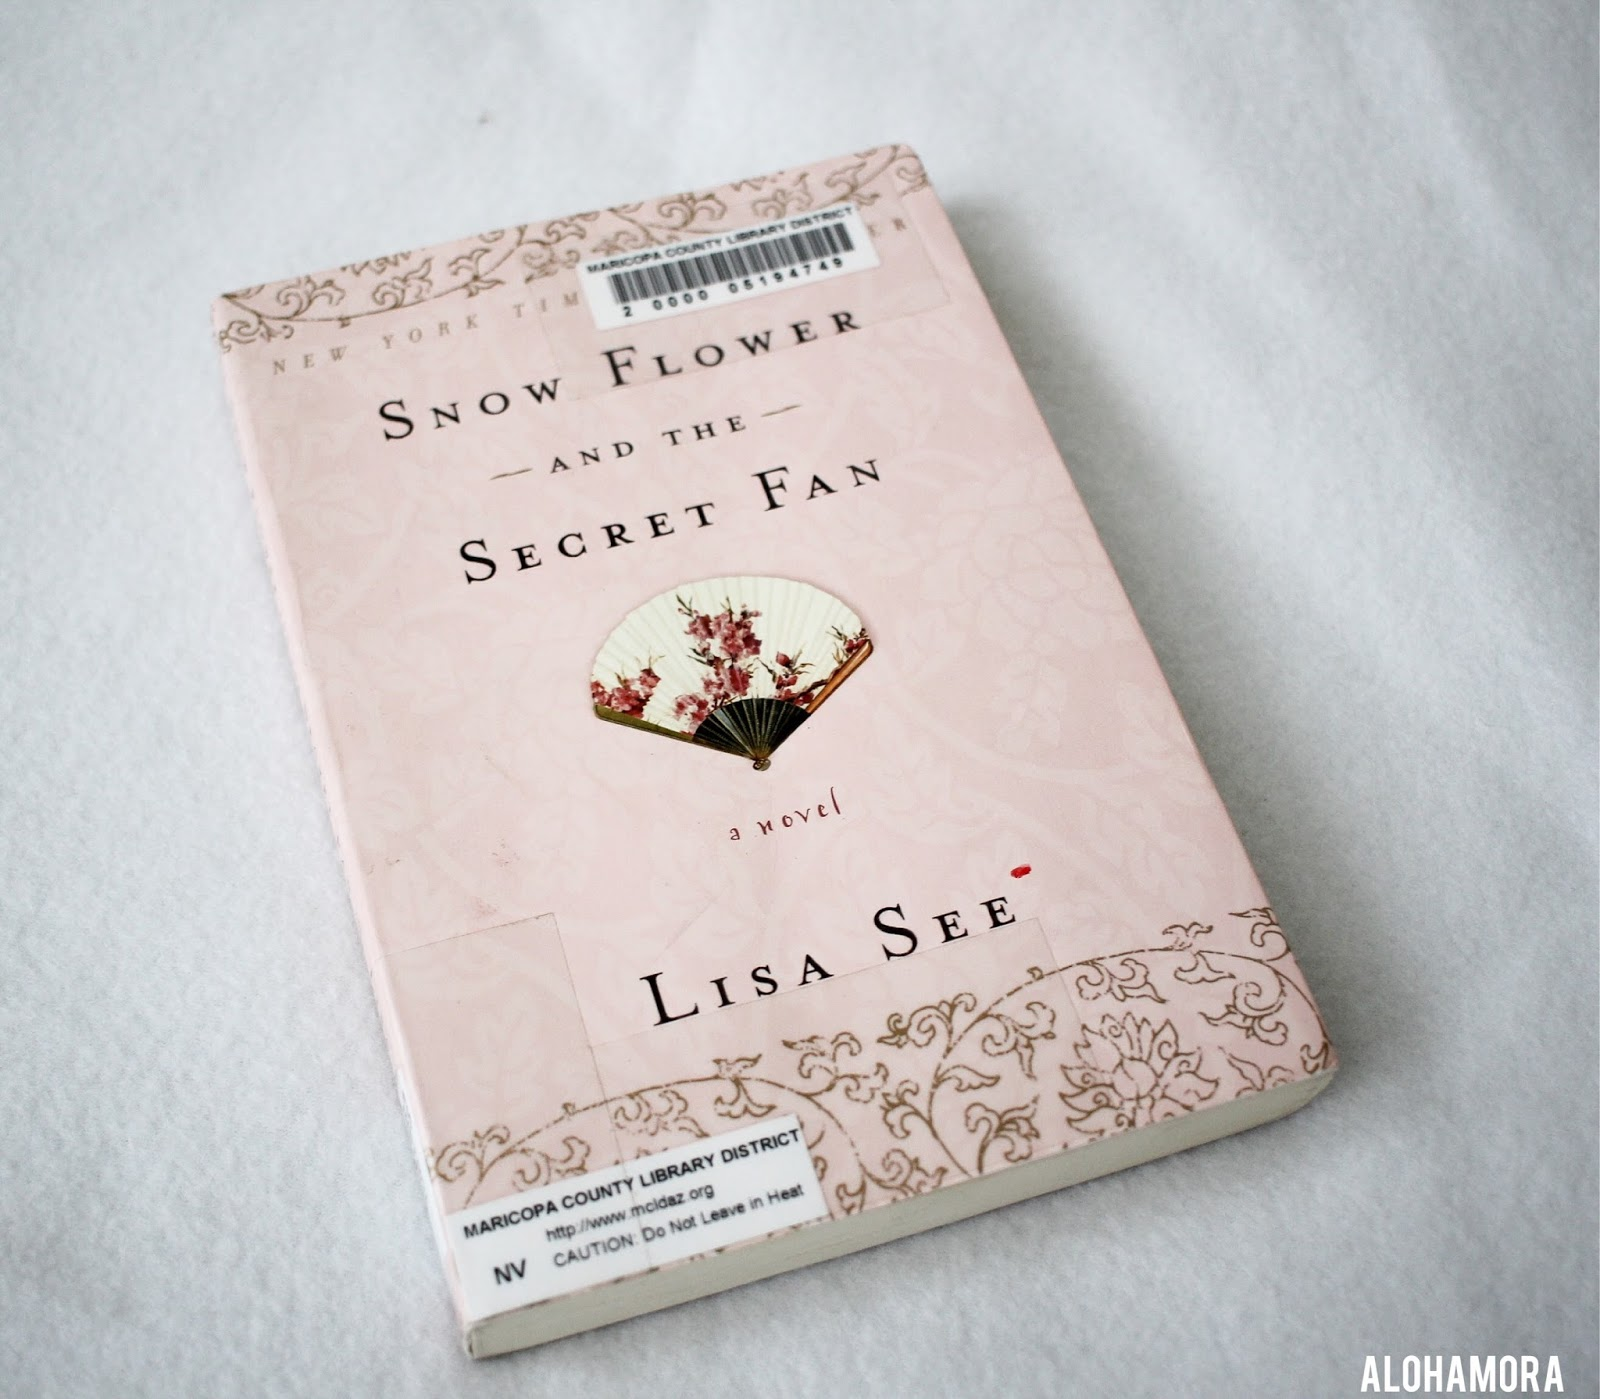 Alohamora: Open A Book: Snow Flower And The Secret Fan